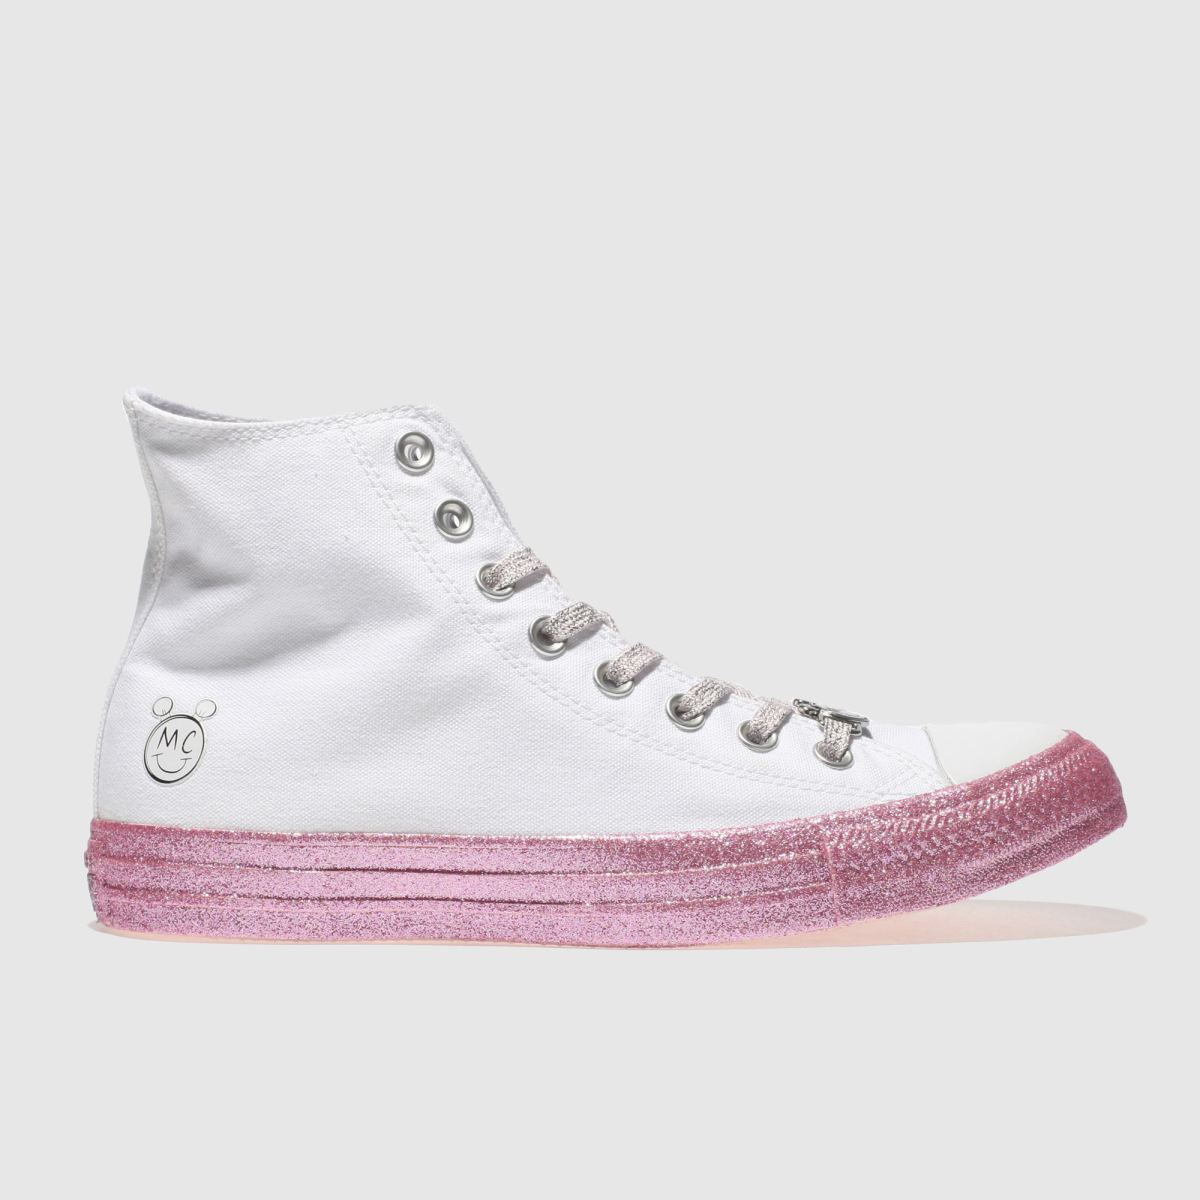 Converse White & Pink All Star Miley Cyrus Hi Trainers